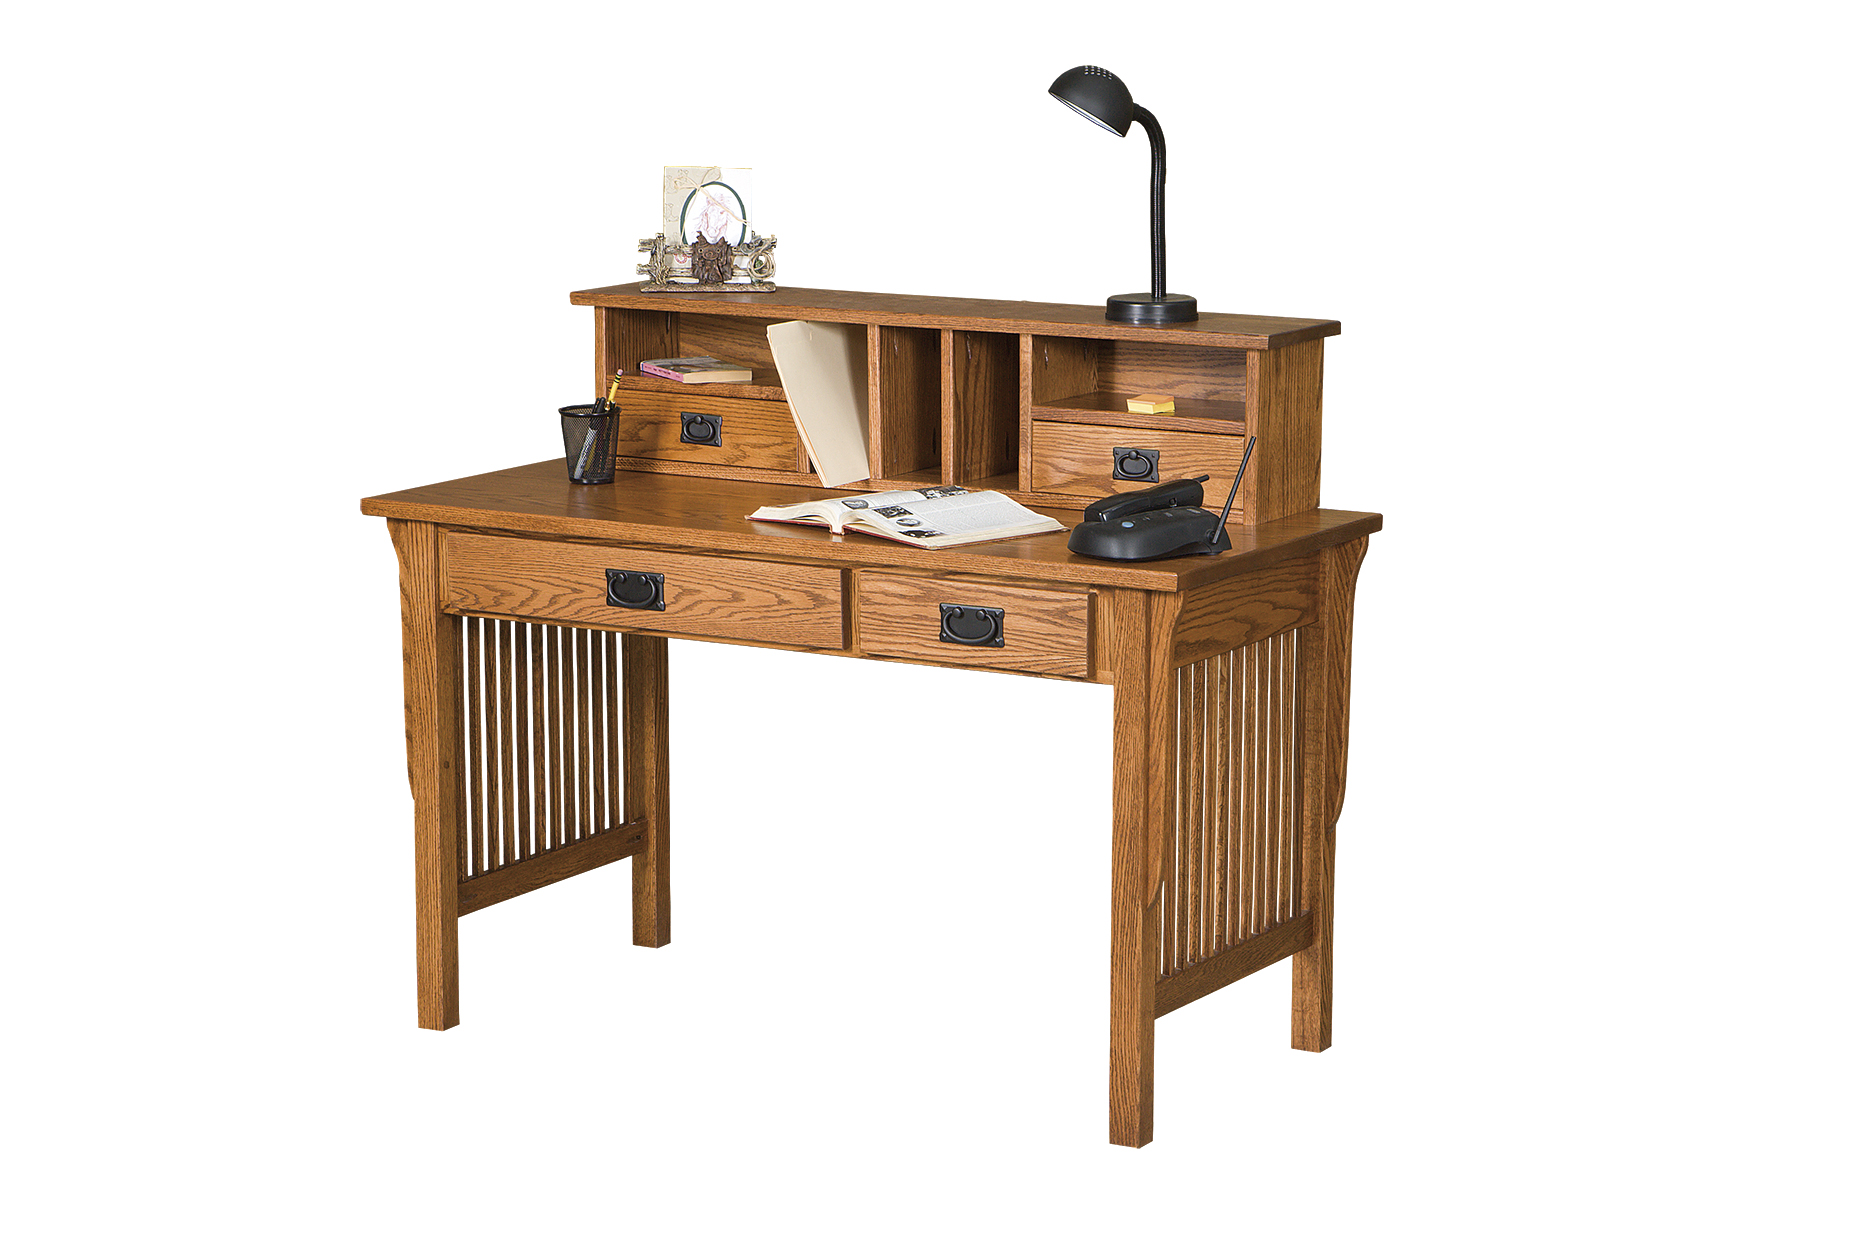 mission style writing desk Shipping destinations the organization-storecom is located in south-east michigan and we ship world wide to over 200 countries our primary markets are the united.